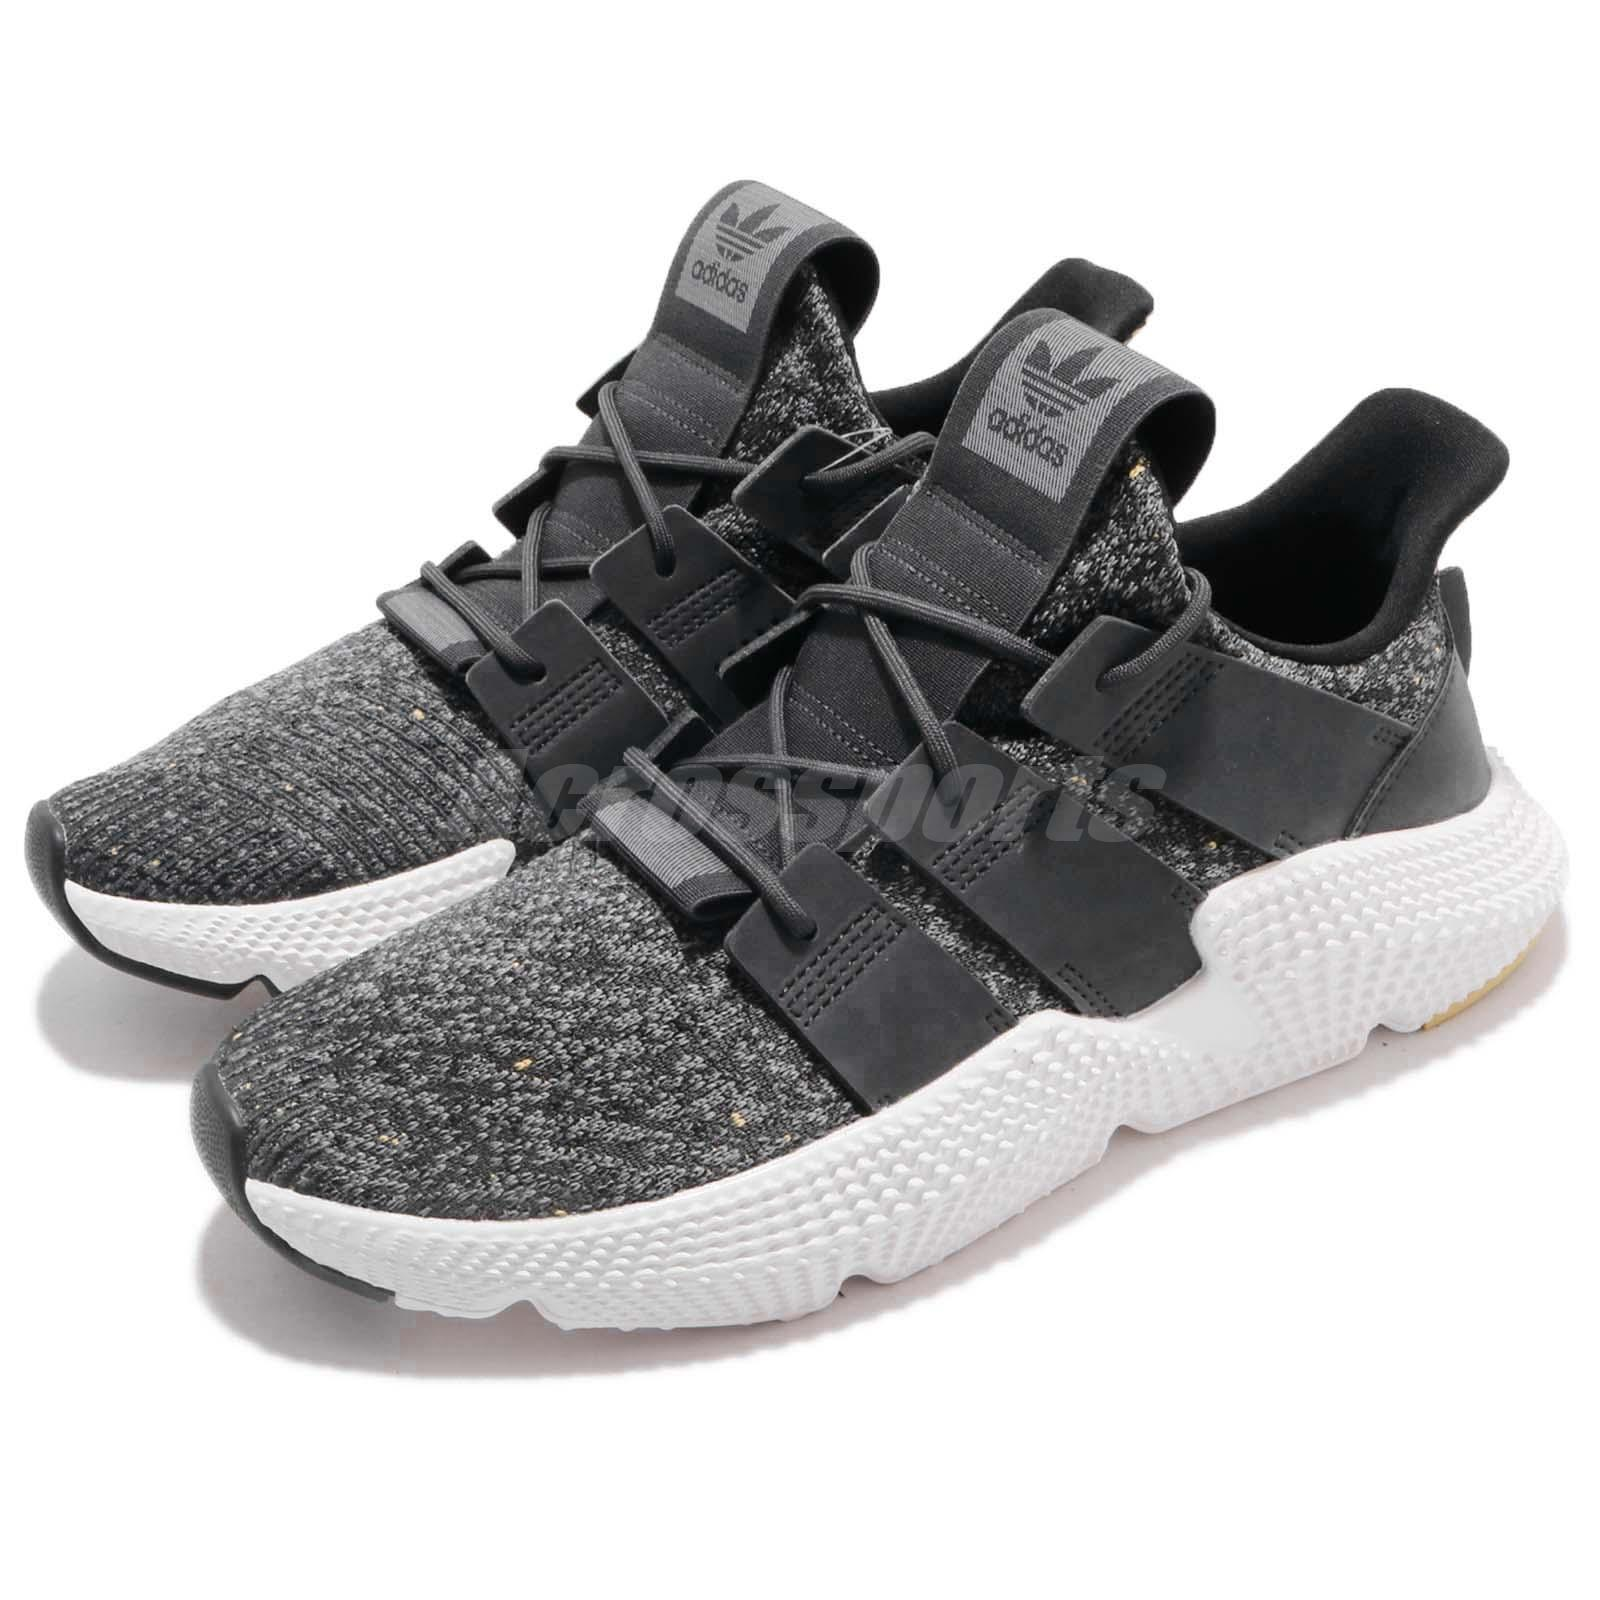 quality design 643fe 0b67c Details about adidas Originals Prophere Carbon Grey White Men Running Shoes  Sneakers B37073